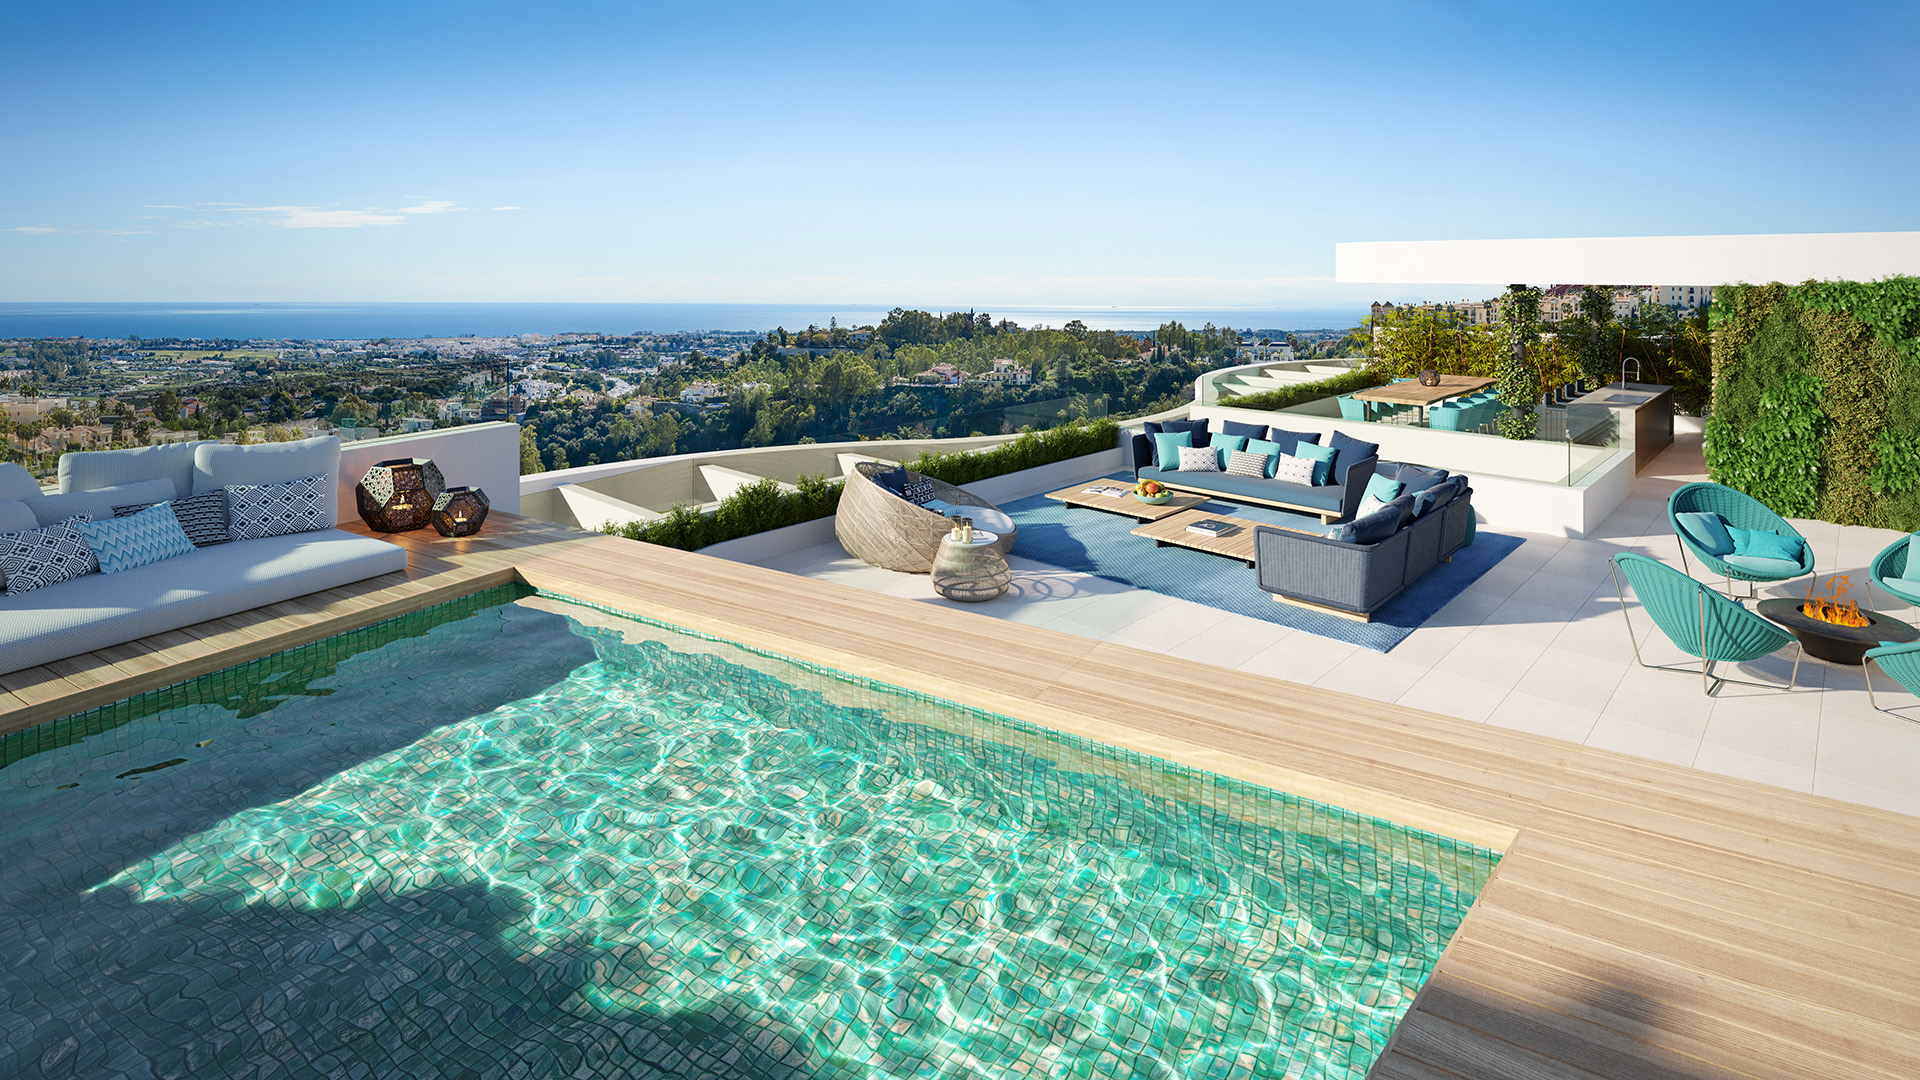 The_View_Marbella_Roof Terrace.jpg